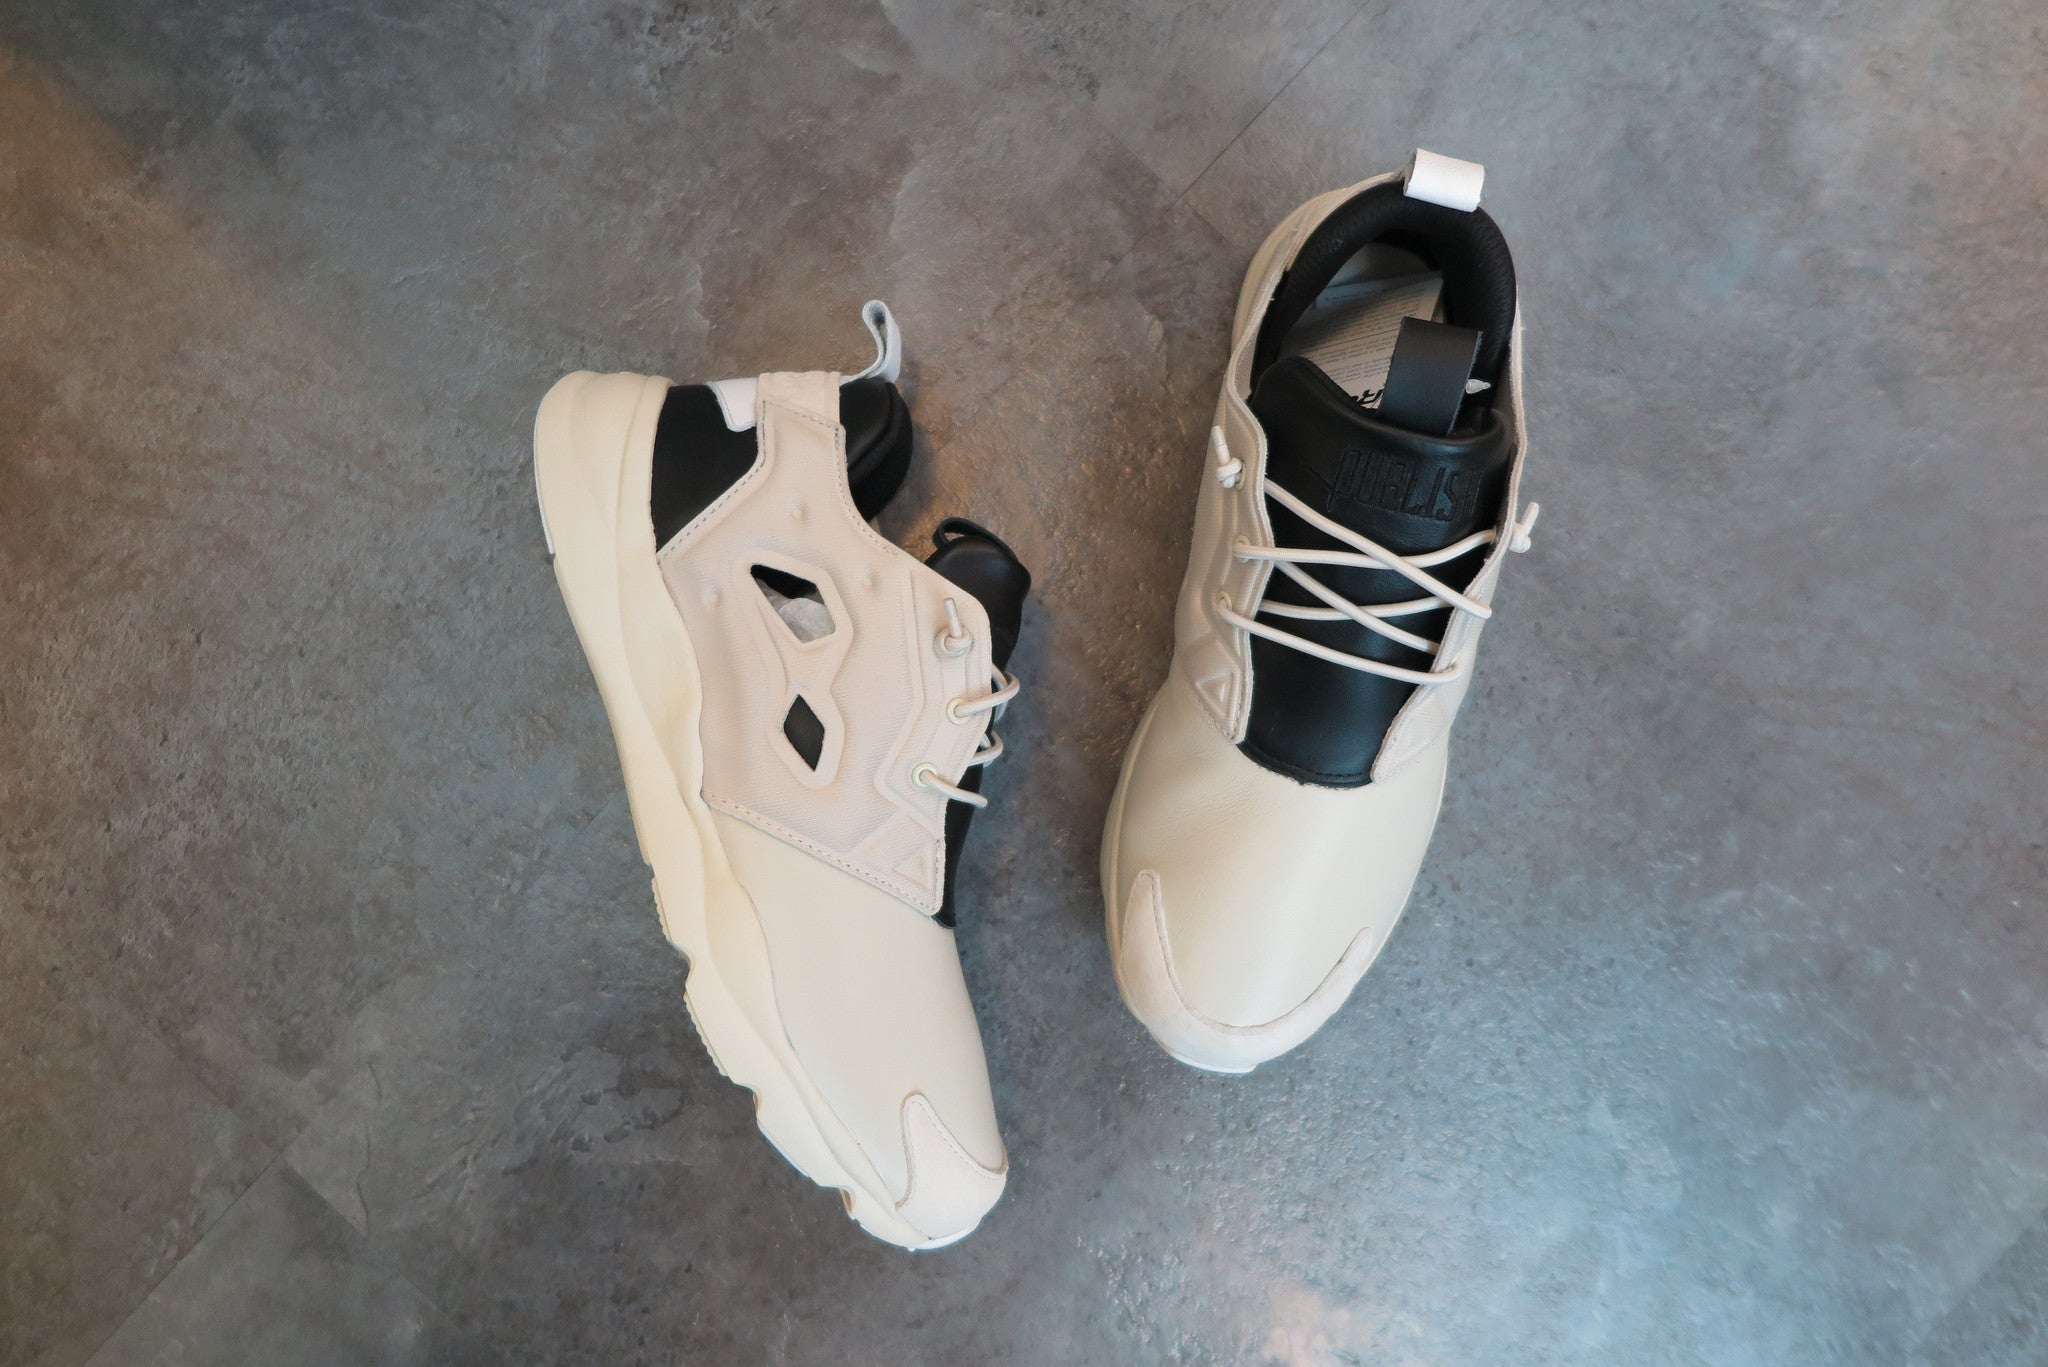 Publish Brand X Reebok Furylite AFF - Oatmeal/Black/White #AQ9298-Sneakers-Navy Selected Shop